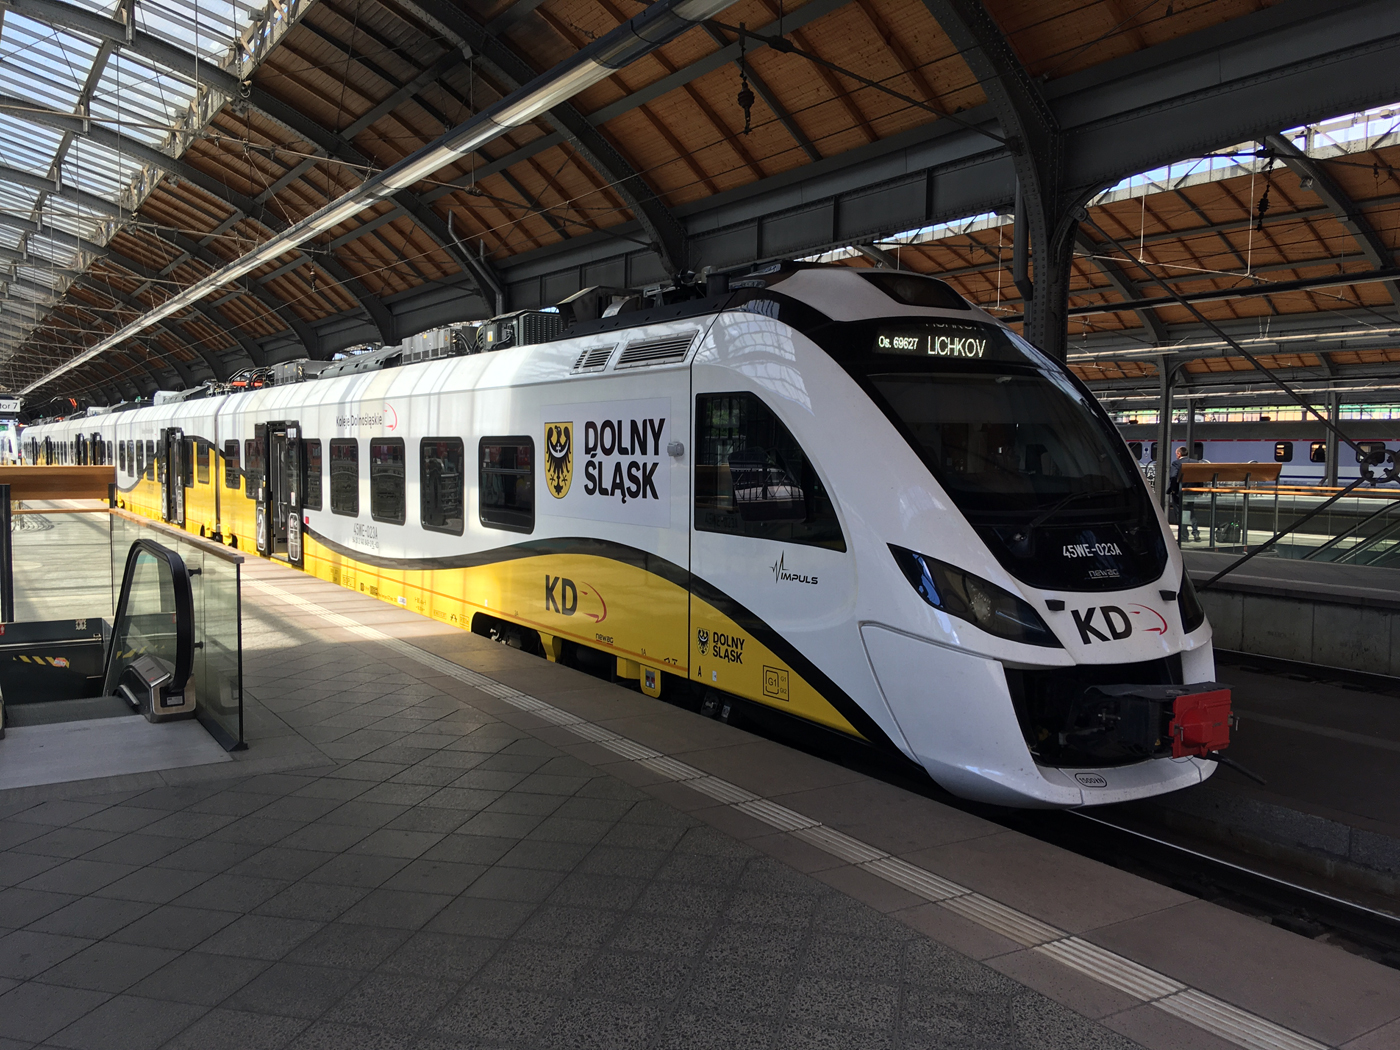 KD train at Wrocław